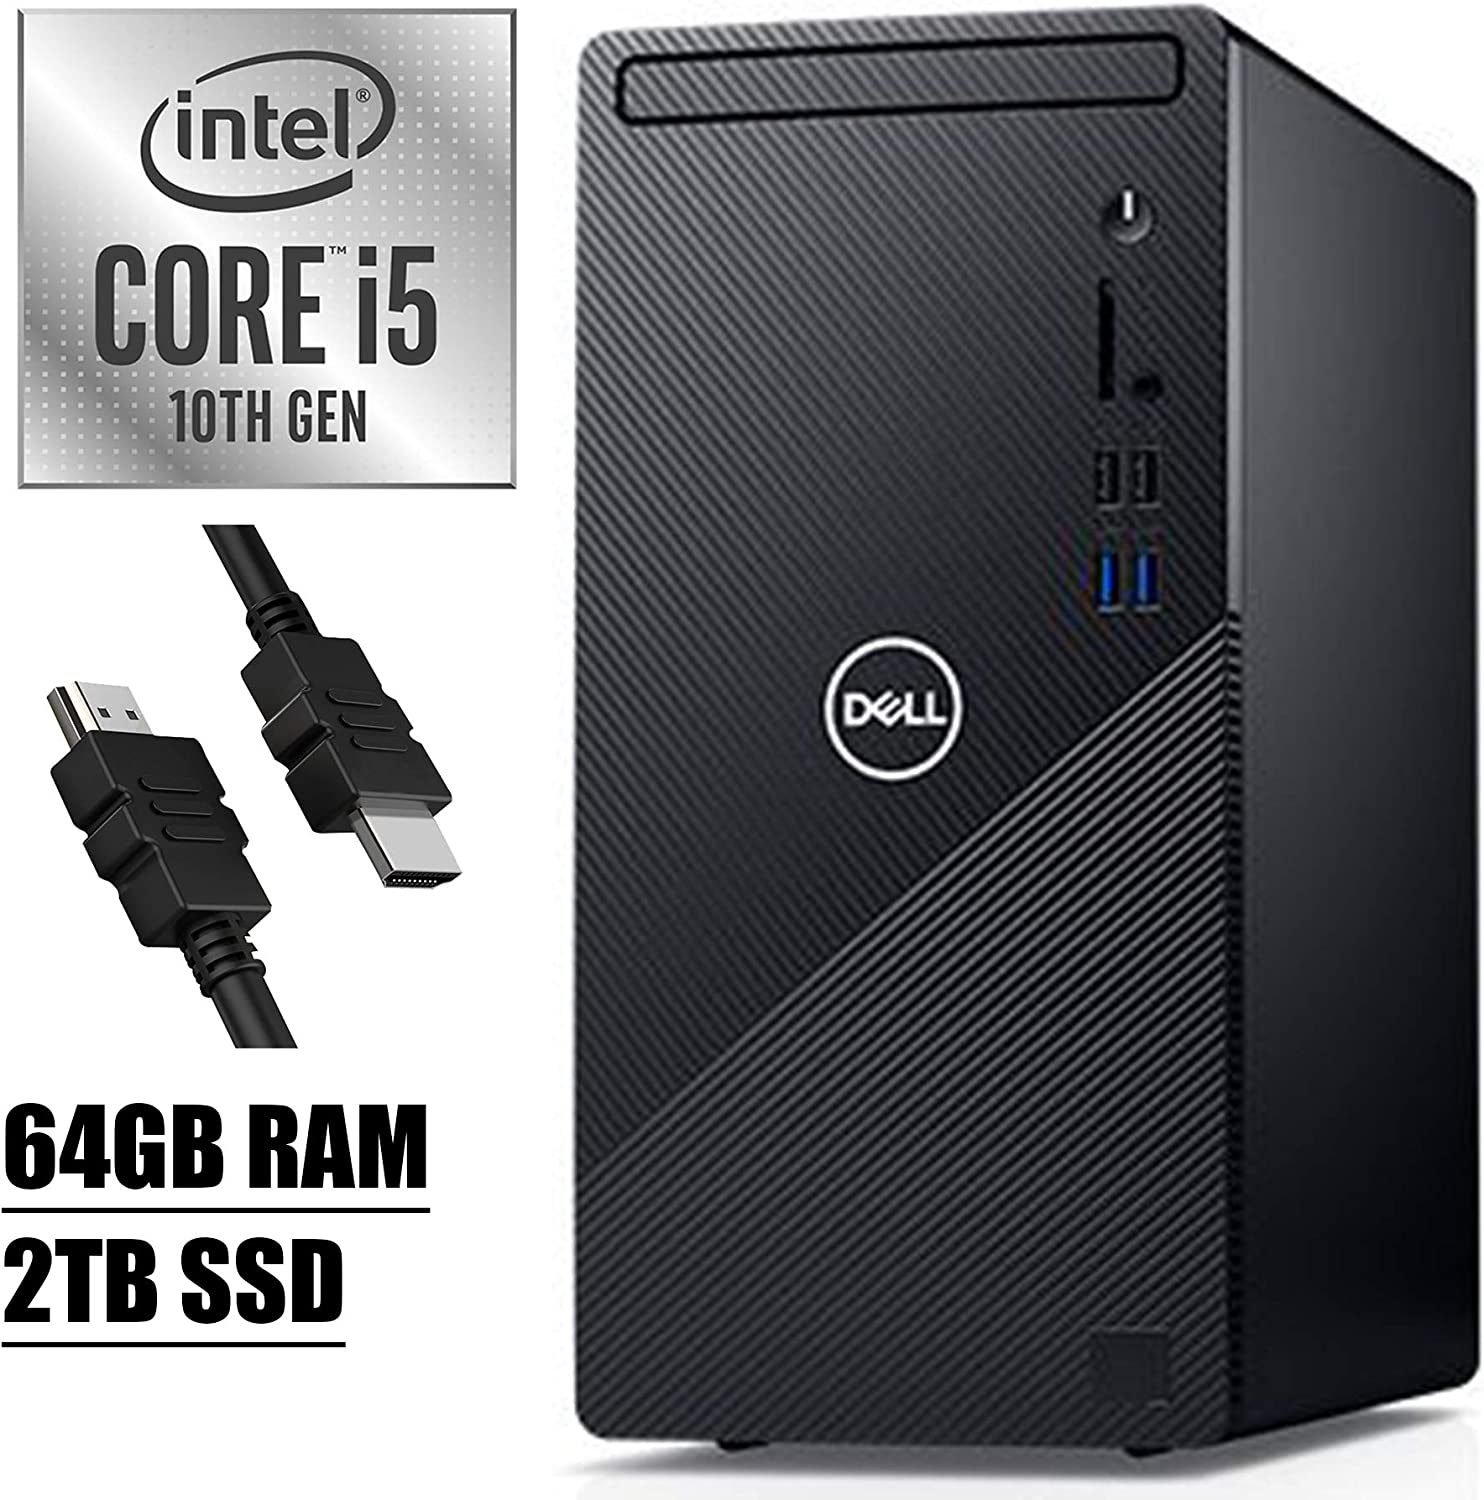 2020 Flagship Dell Inspiron 3000 3880 Desktop Computer 10th Gen Intel Hexa-Core i5-10400 (Beats i7-7700) up to 4.30 GHz 64GB RAM 2TB SSD with Mouse and Keyboard WiFi Win10+iCarpHDMI